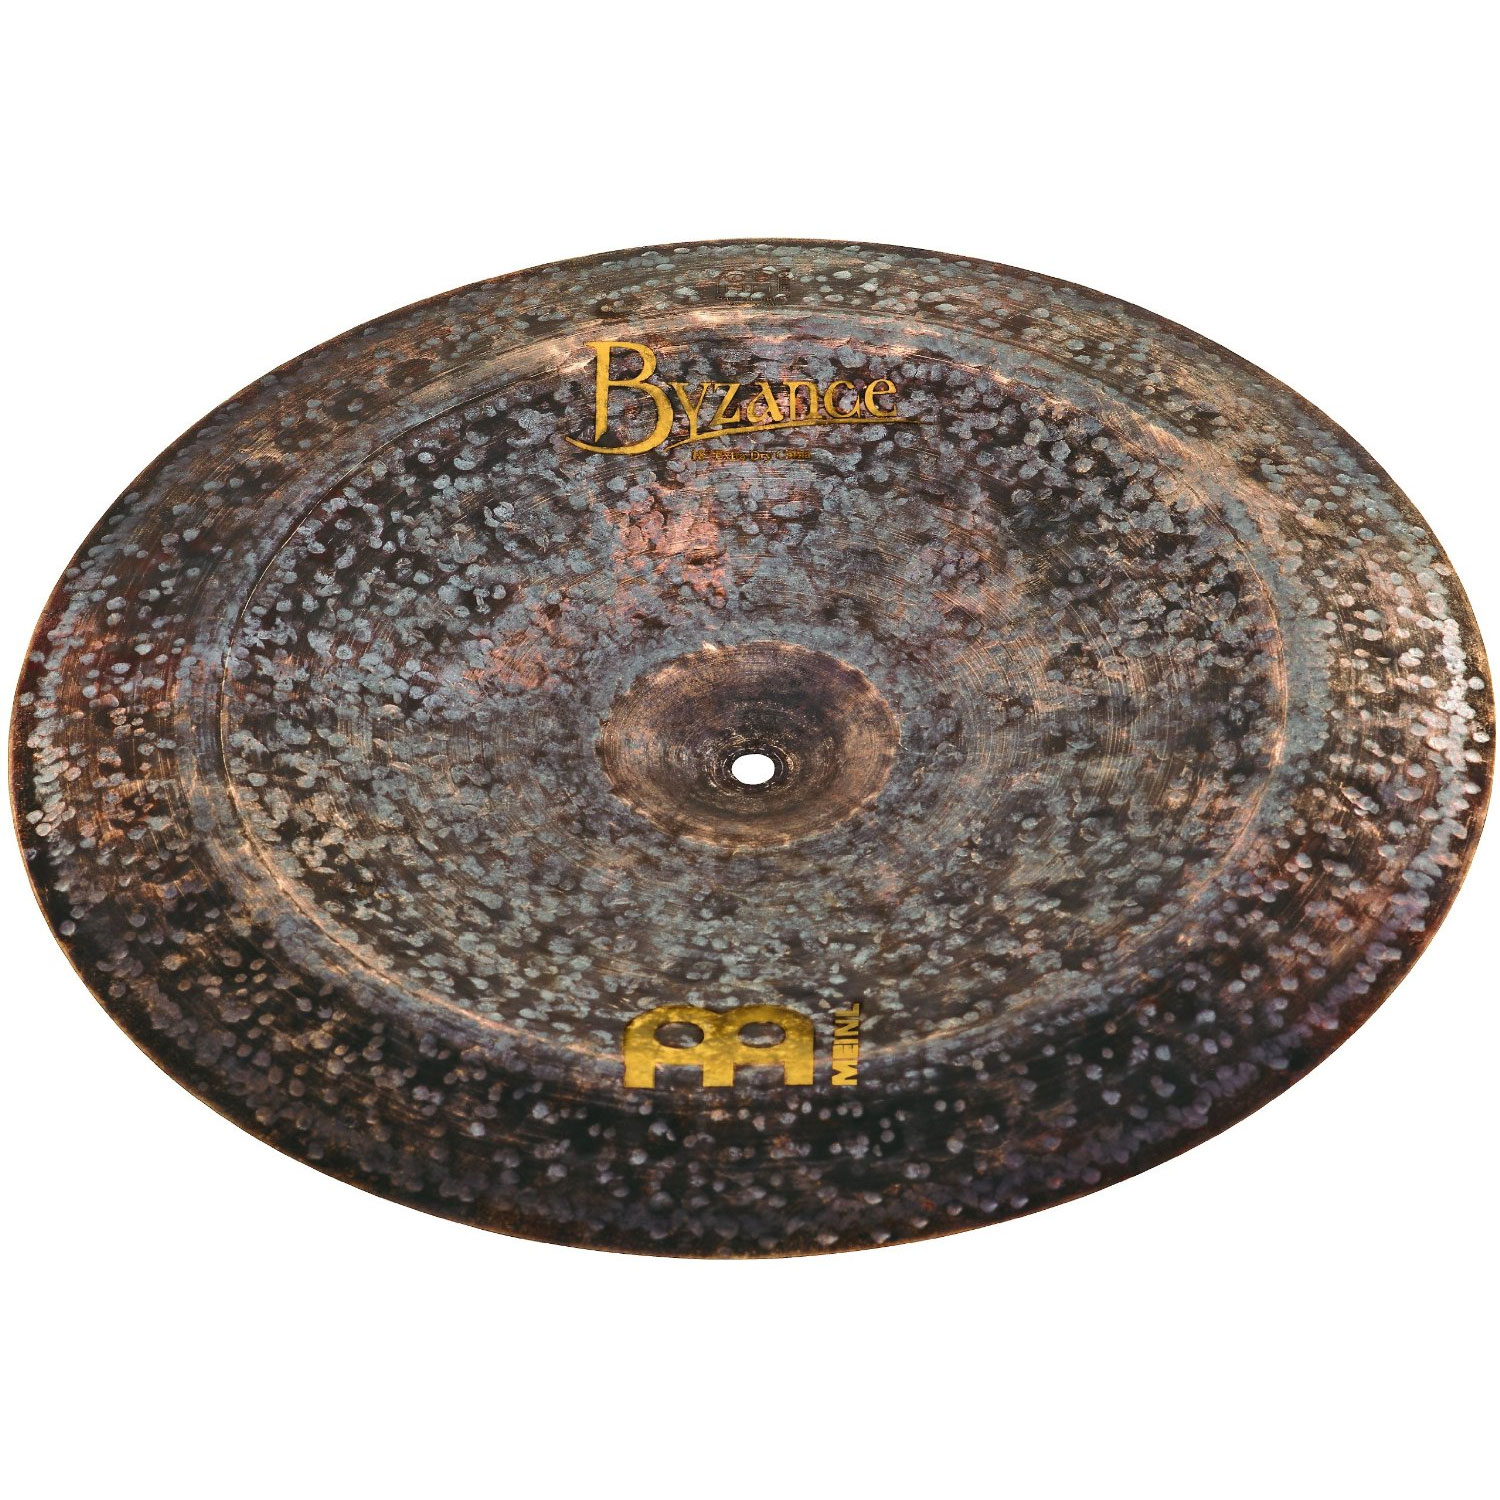 "Meinl 18"" Byzance Extra Dry China Cymbal"